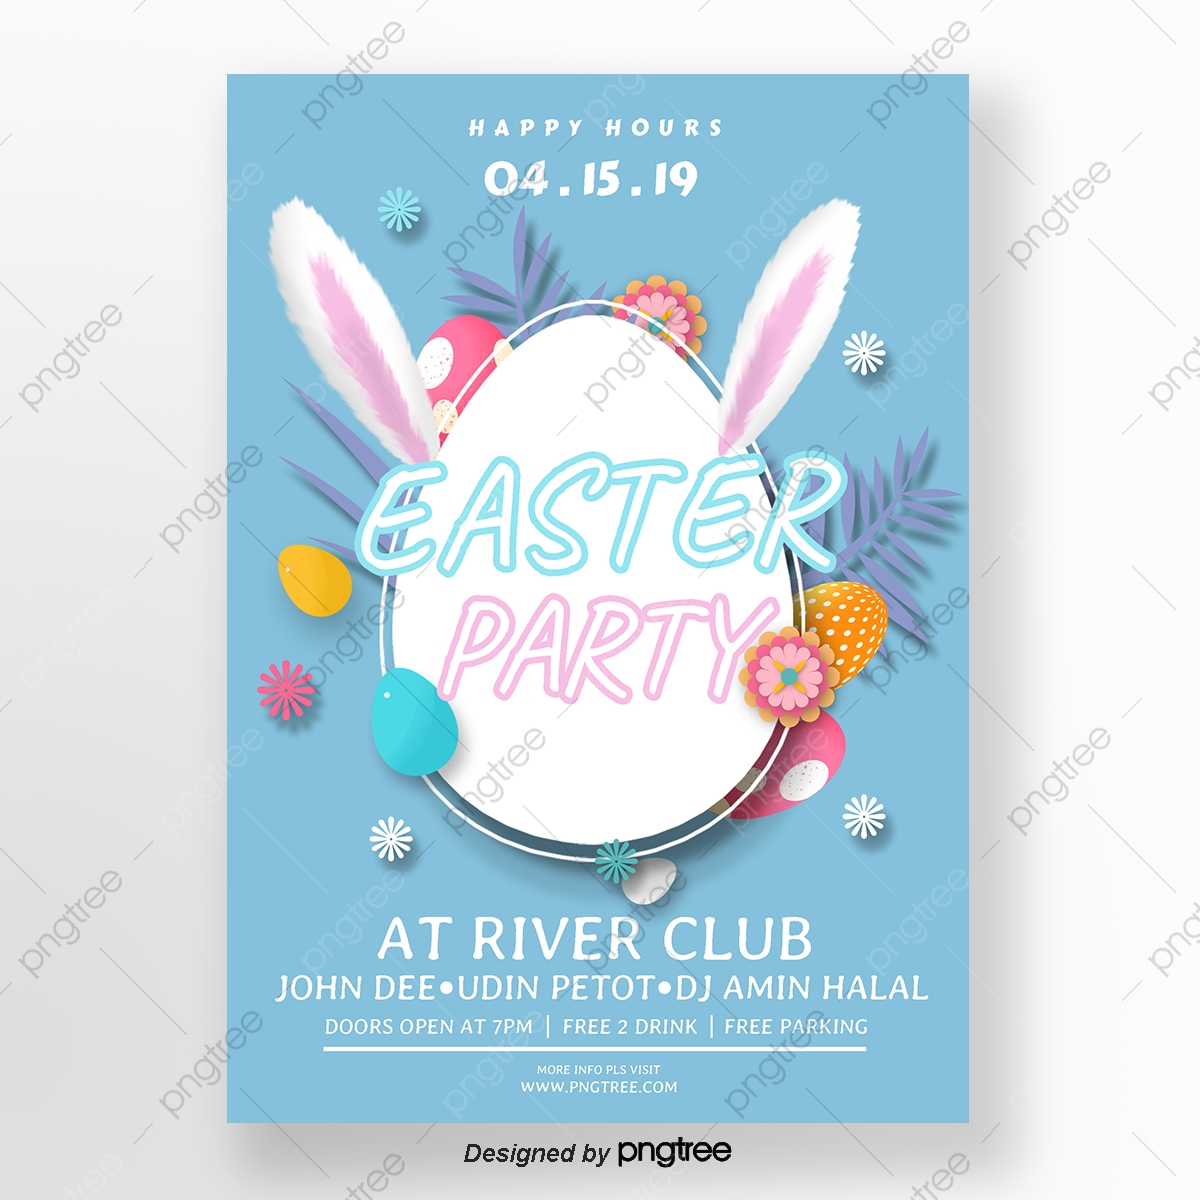 Closed For Easter Template from png.pngtree.com